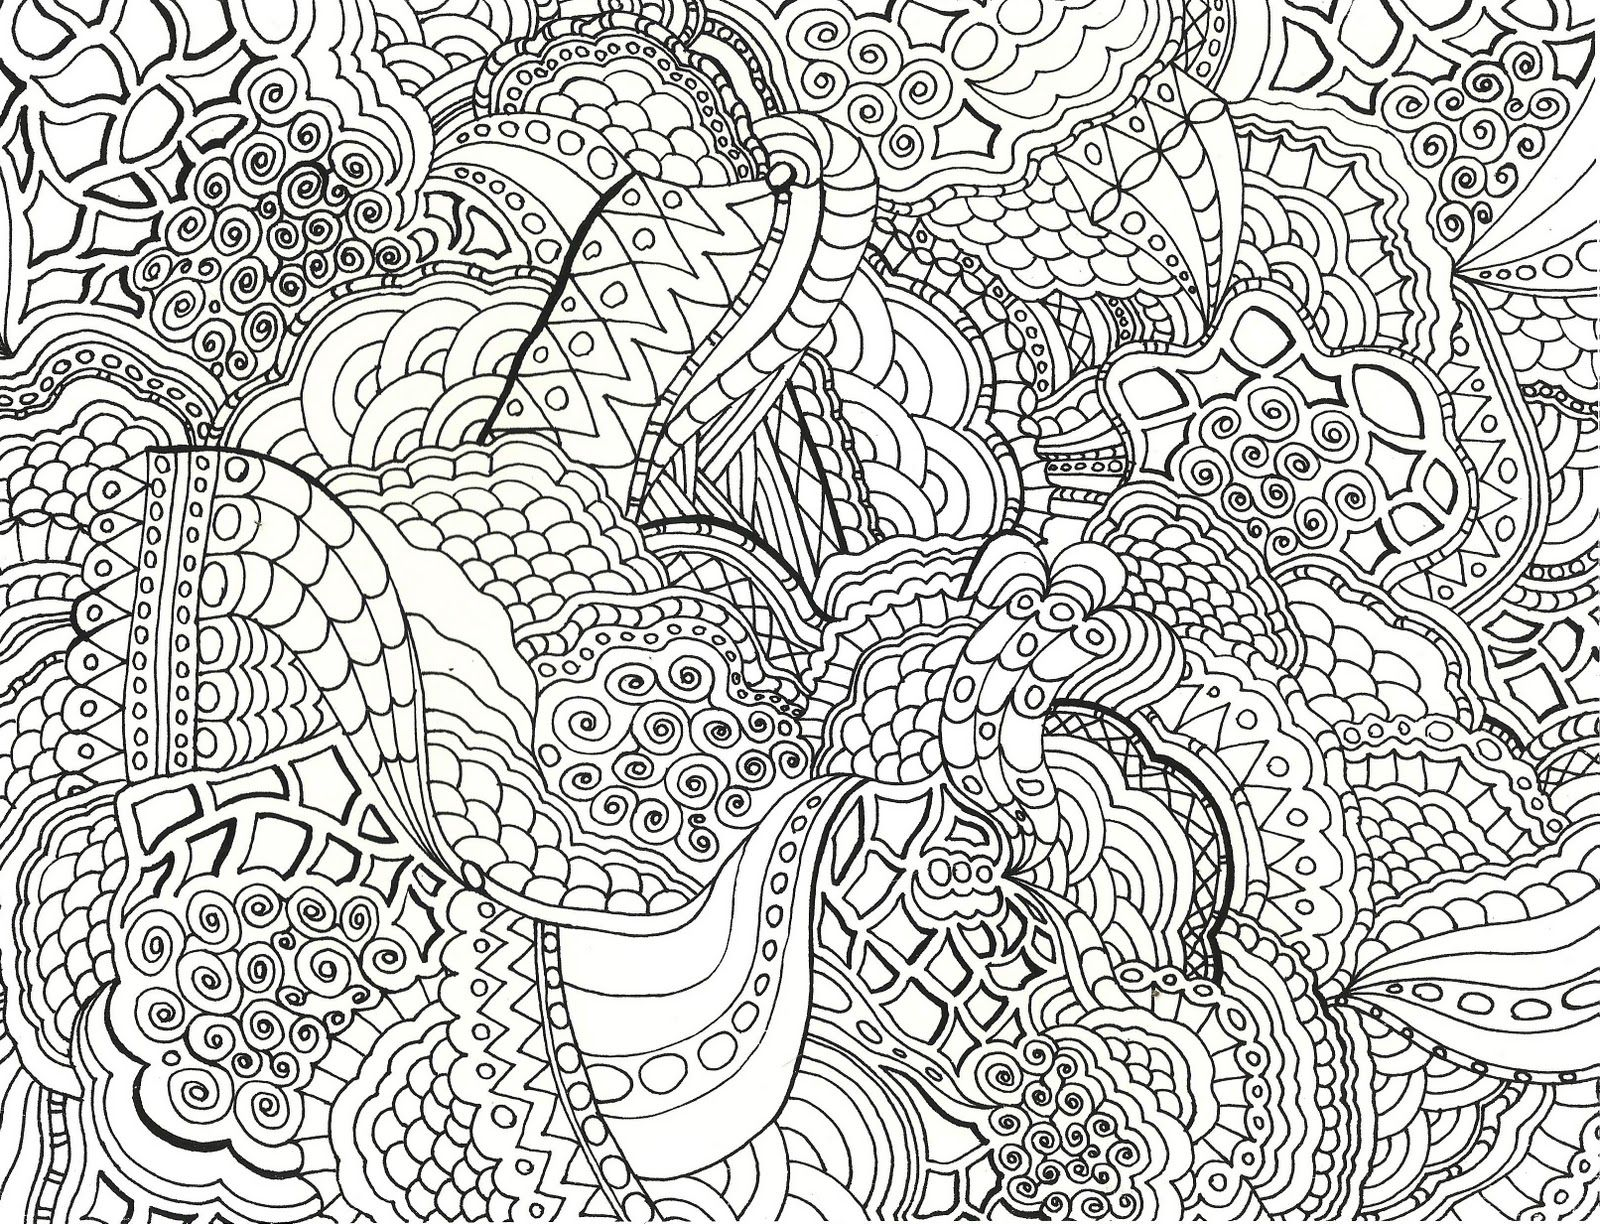 coloring pages designs printable - photo#7